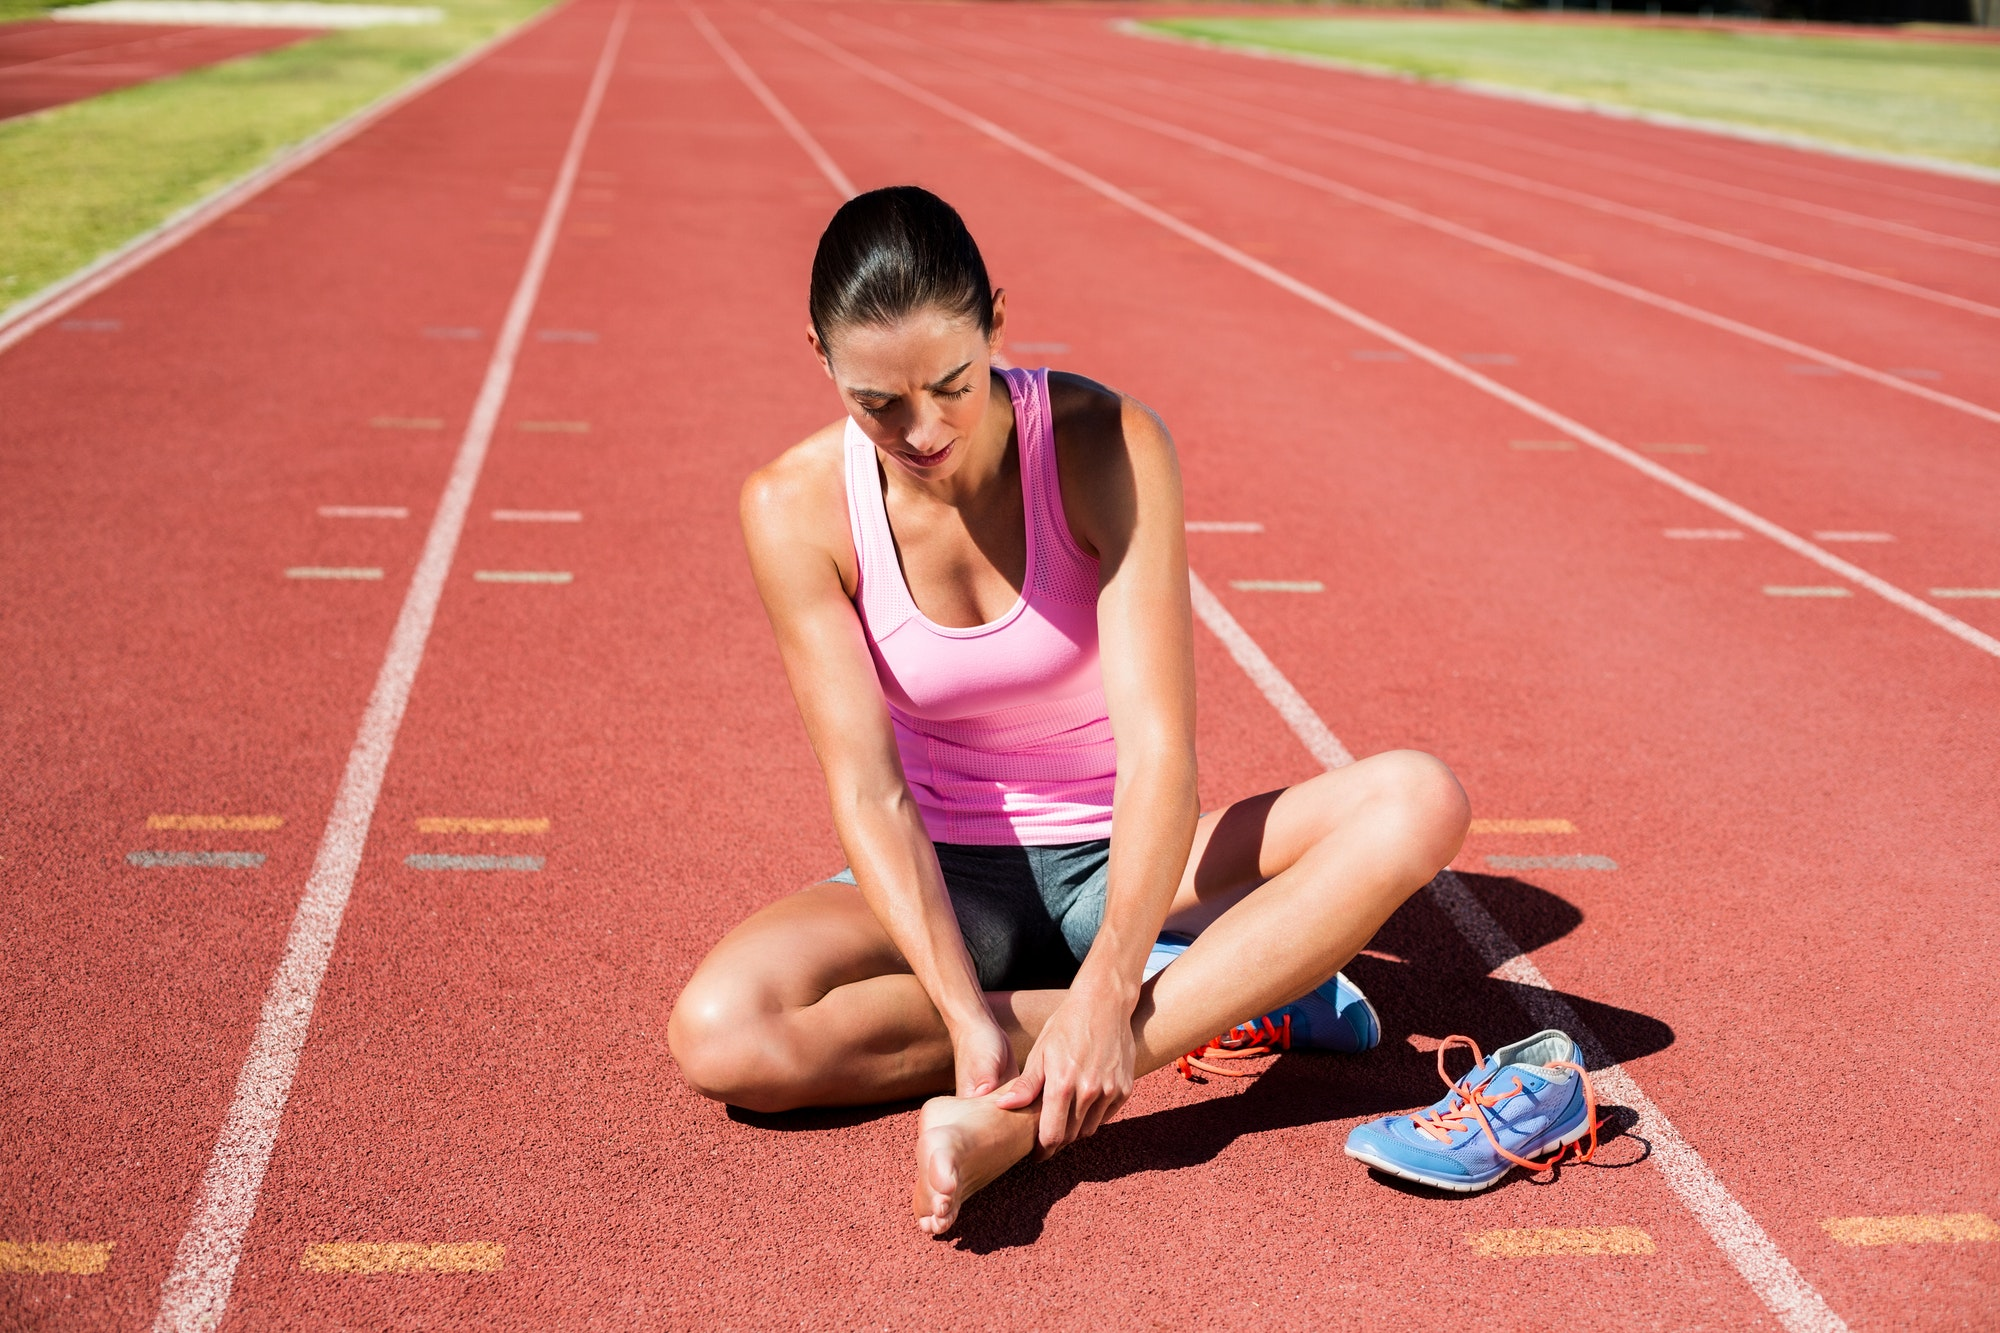 Female athlete with foot pain on running track